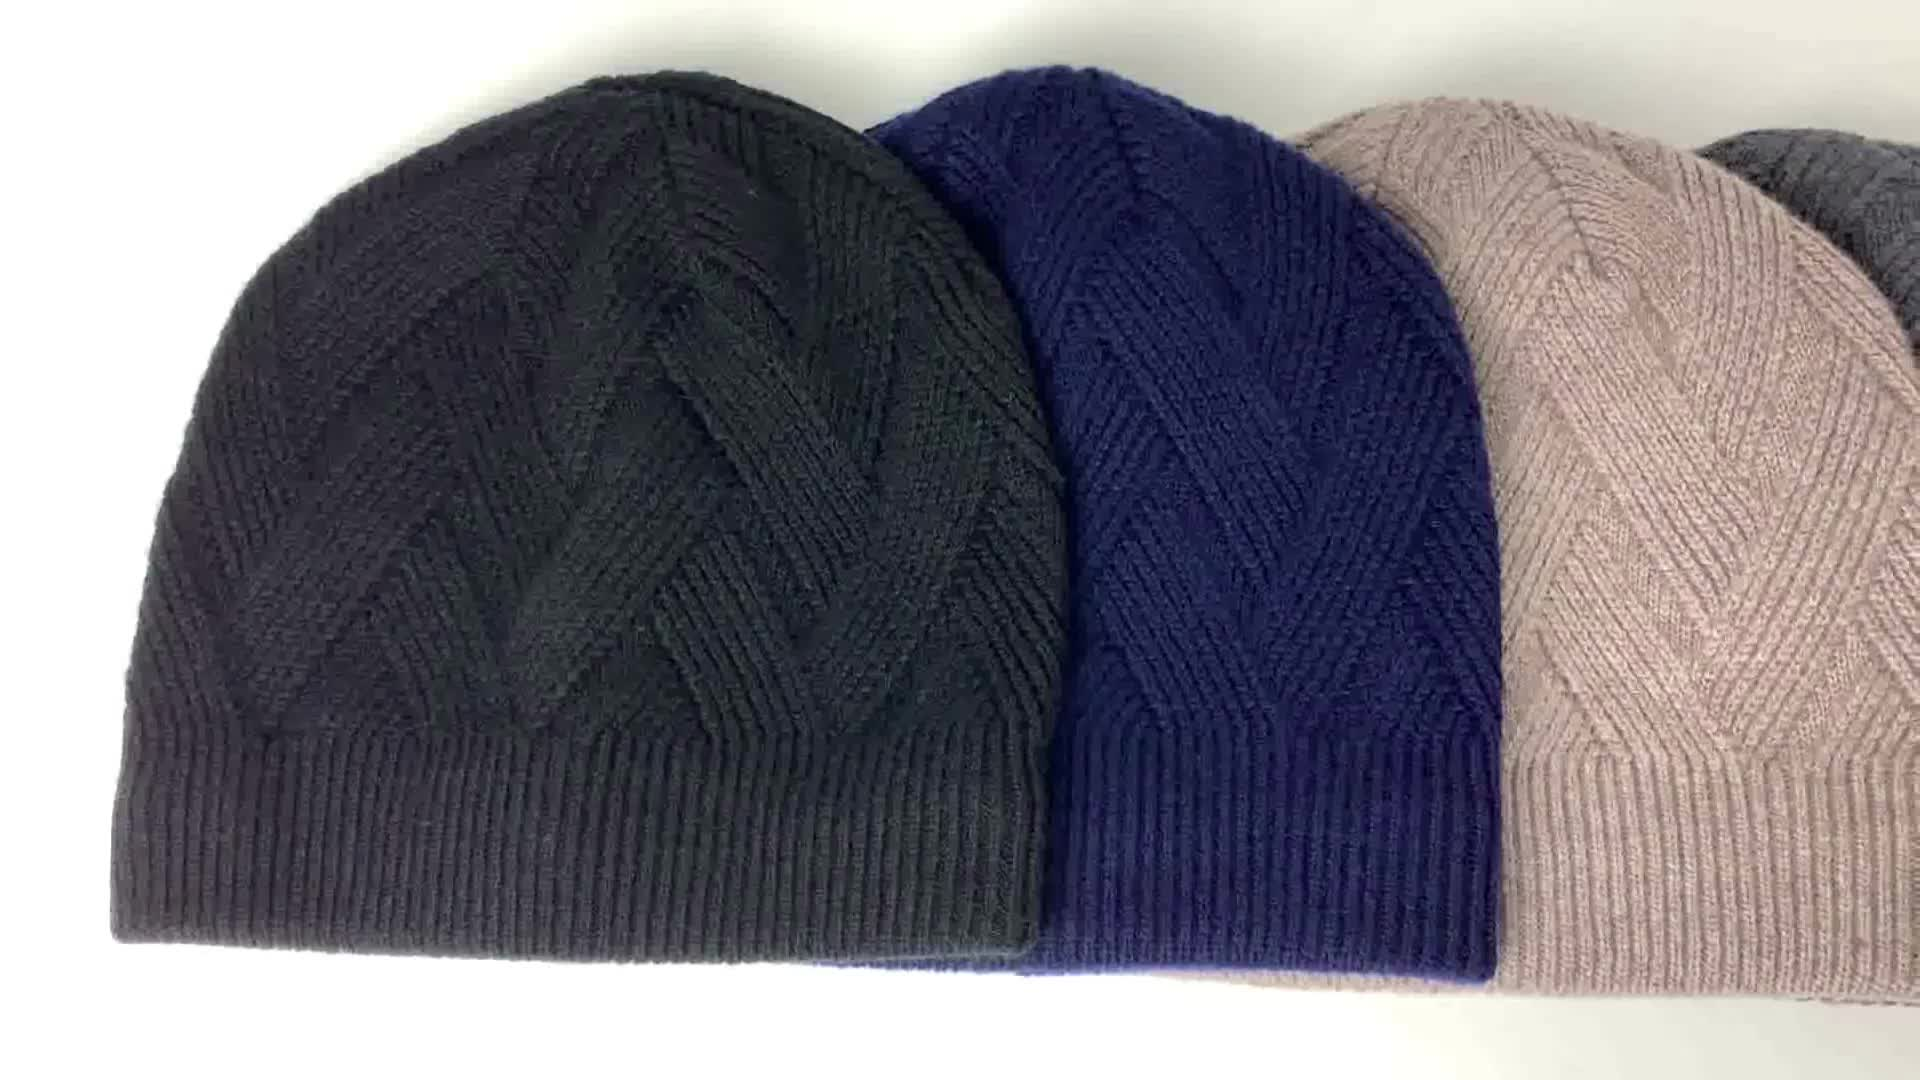 New style in Europe pure wool thick warm knit hat cap for men